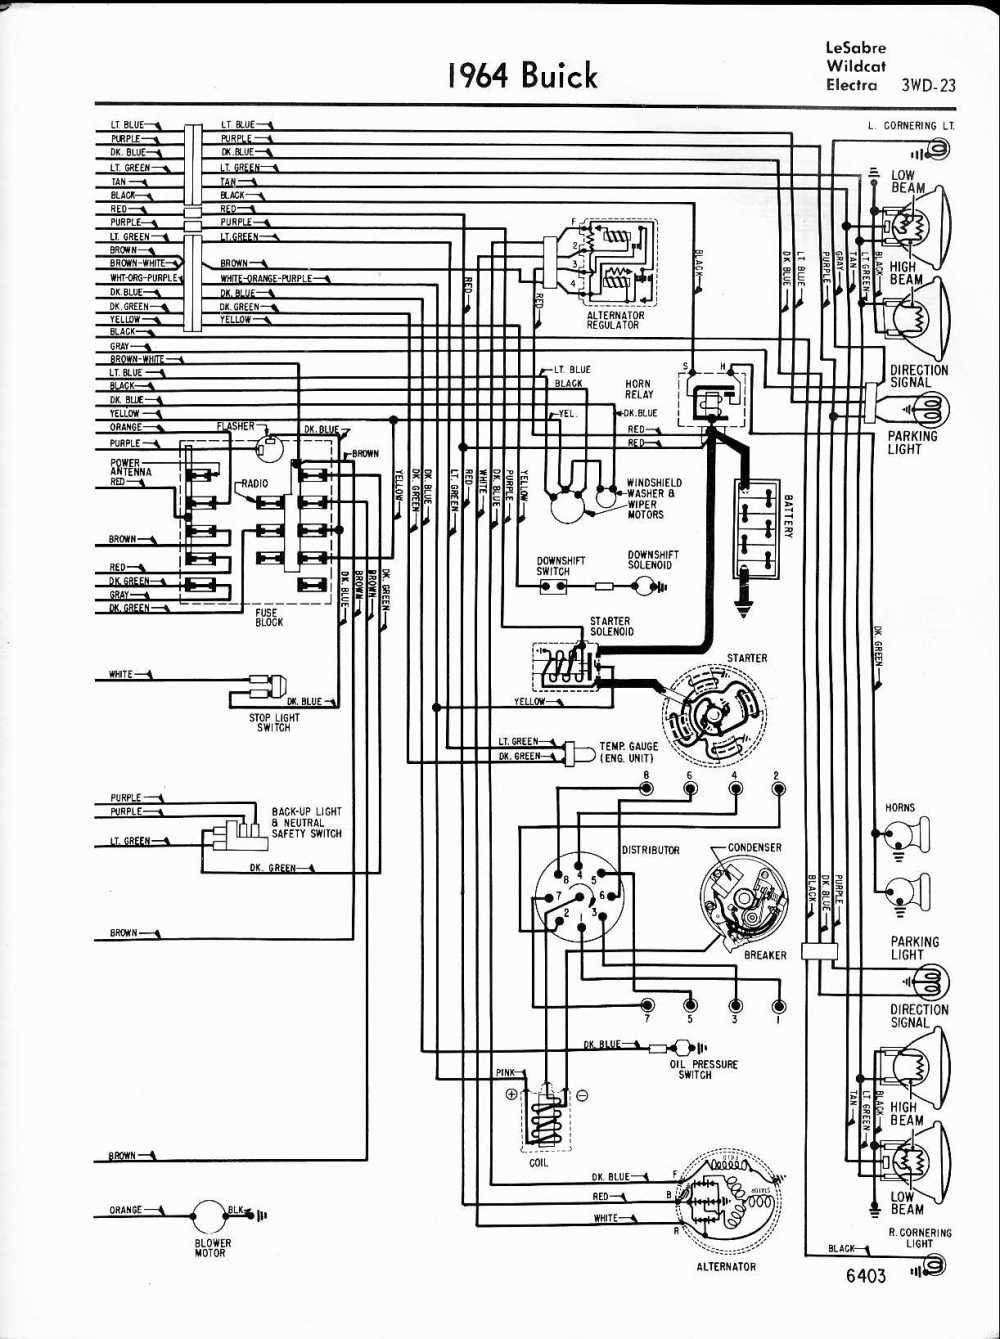 medium resolution of wiring diagrams 1965 buick wildcat wiring library power window circuit diagram of 1966 buick 49000 series